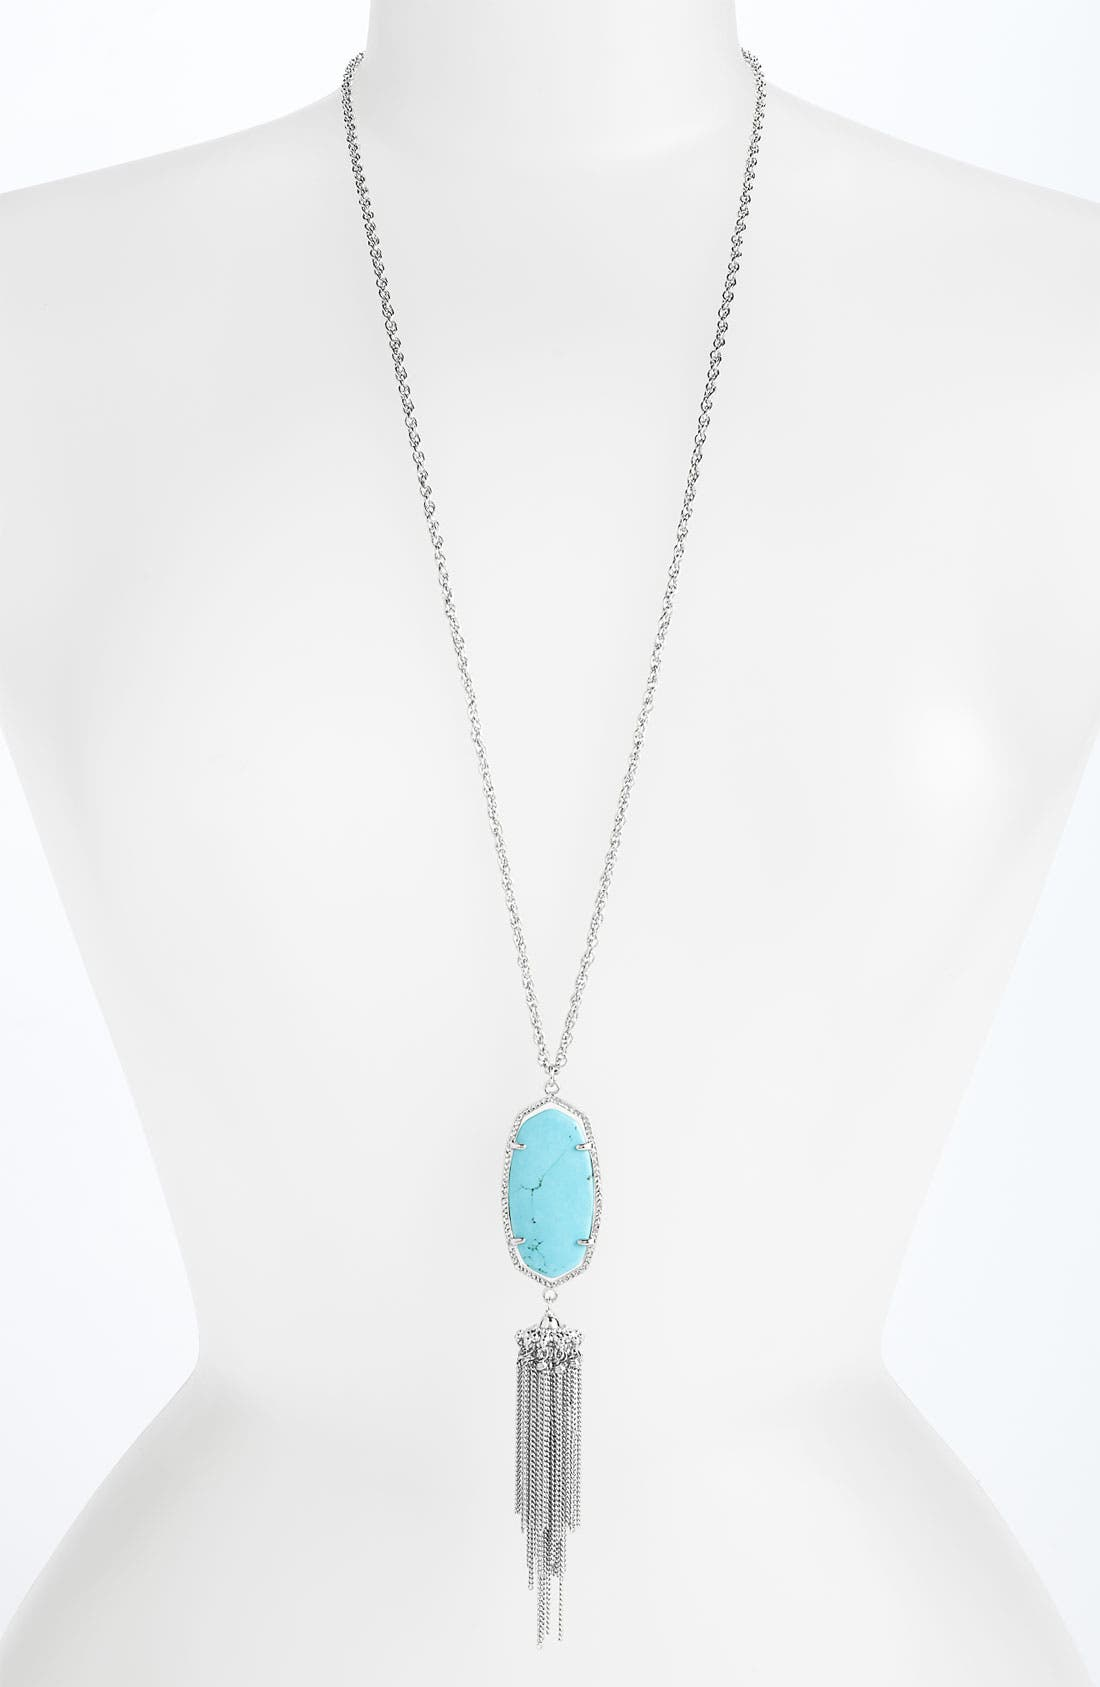 Main Image - Kendra Scott 'Rayne' Pendant Necklace